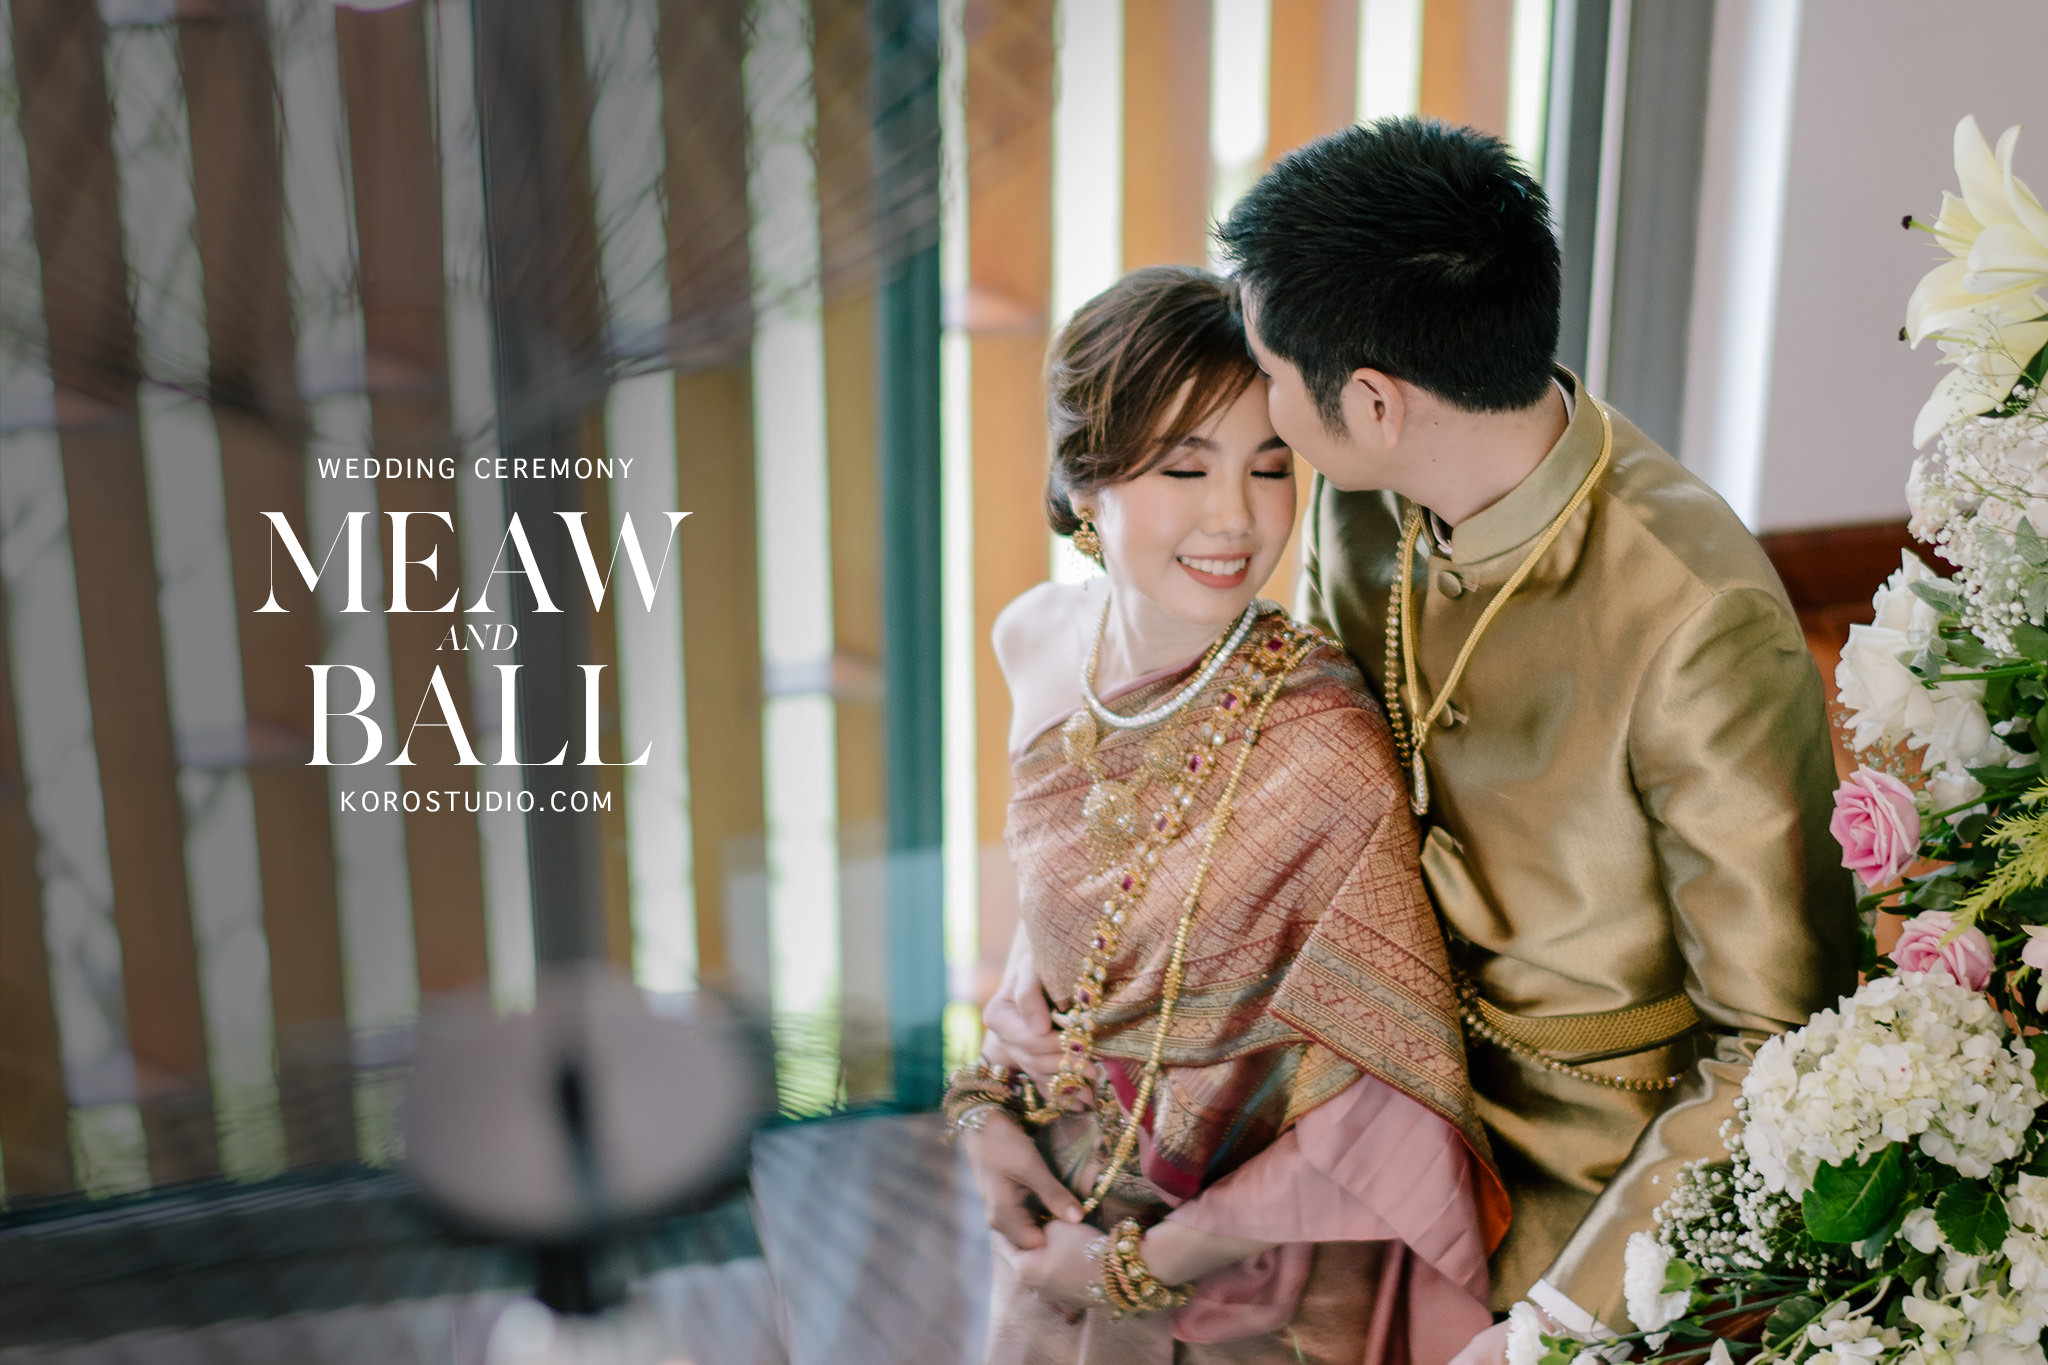 thai wedding at home wedding ceremony cover Wedding at Home Meaw & Ball Thai Wedding Ceremony Photo by Koro Studio